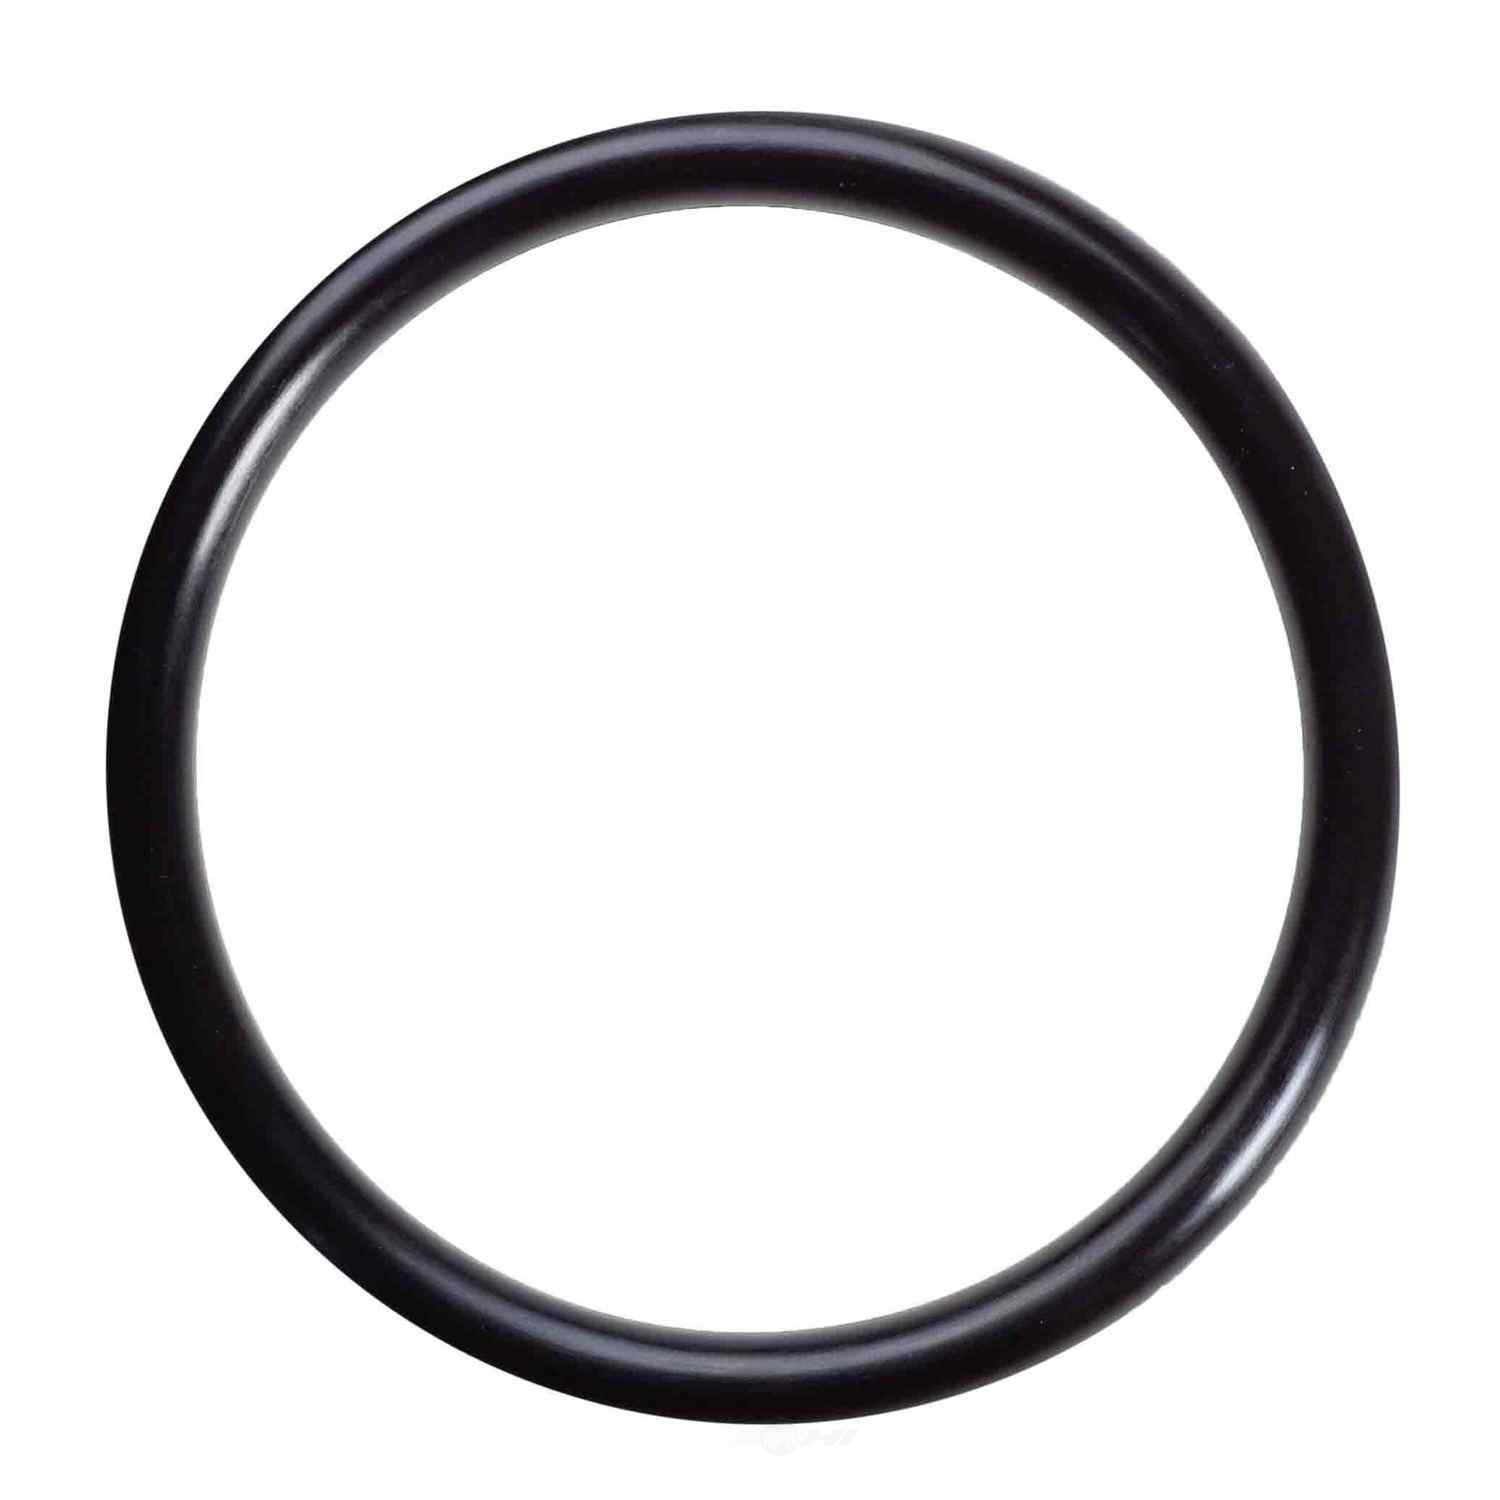 FELPRO - Fuel Pump O-Ring - FEL 414